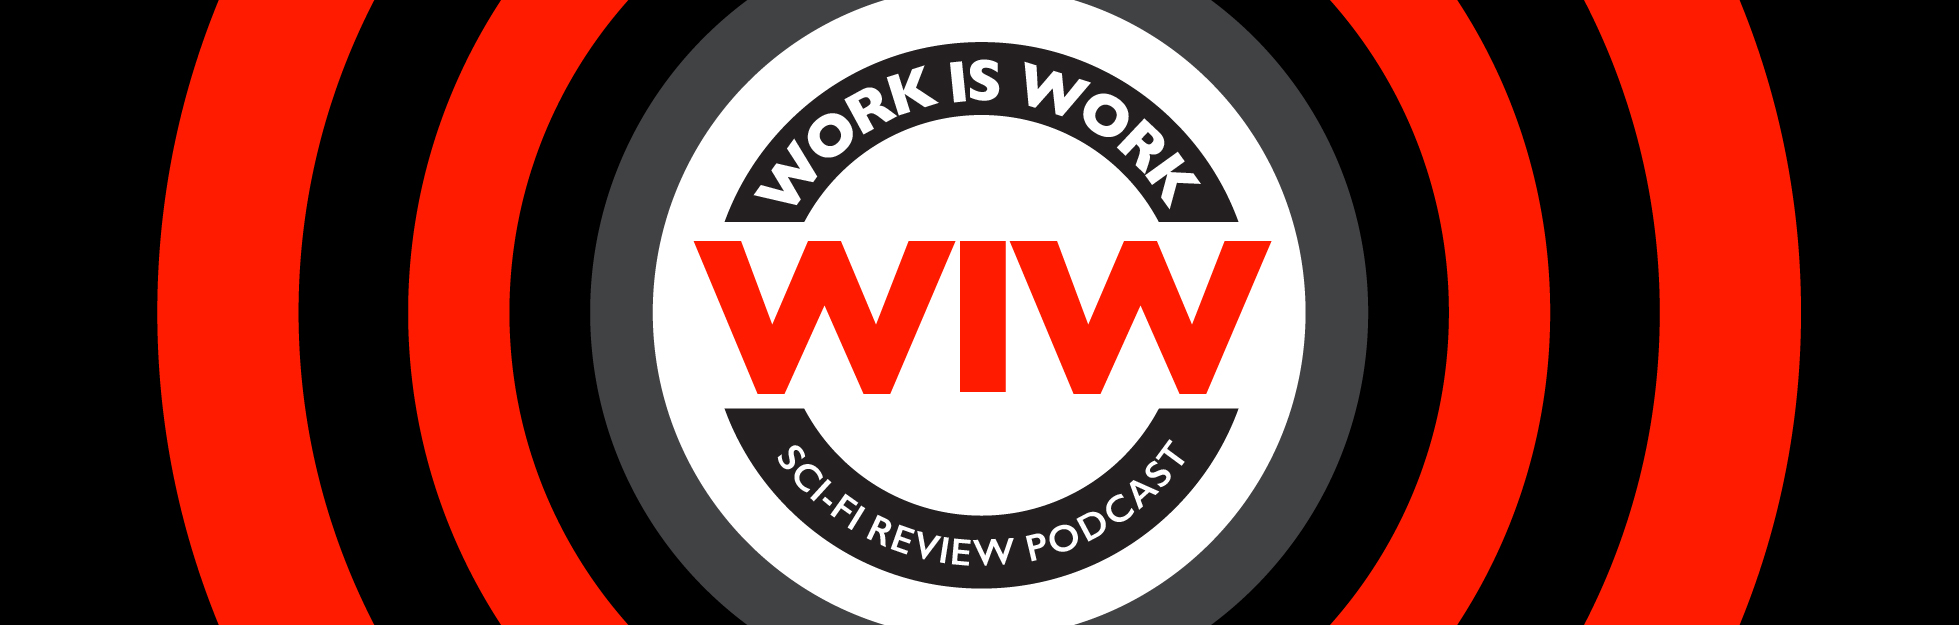 Work is Work Podcast